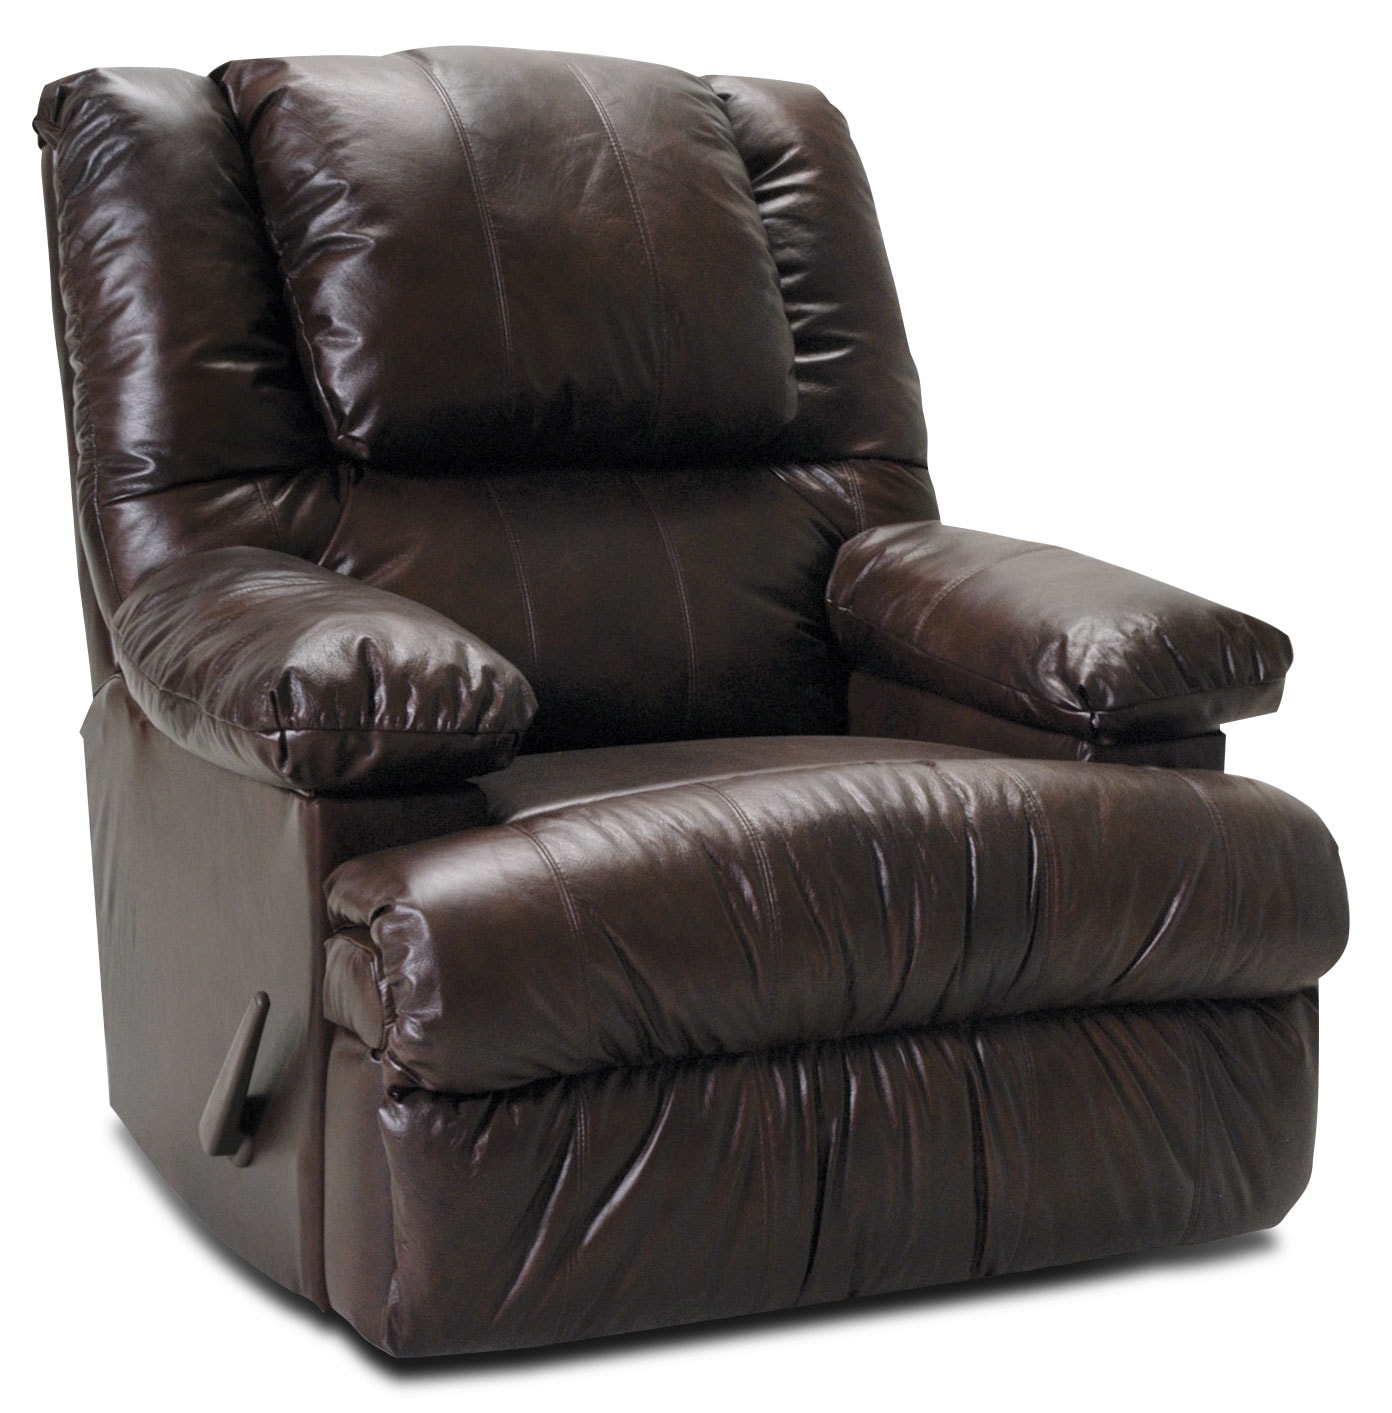 Designed2b Recliner 5598 Genuine Leather Rocker With